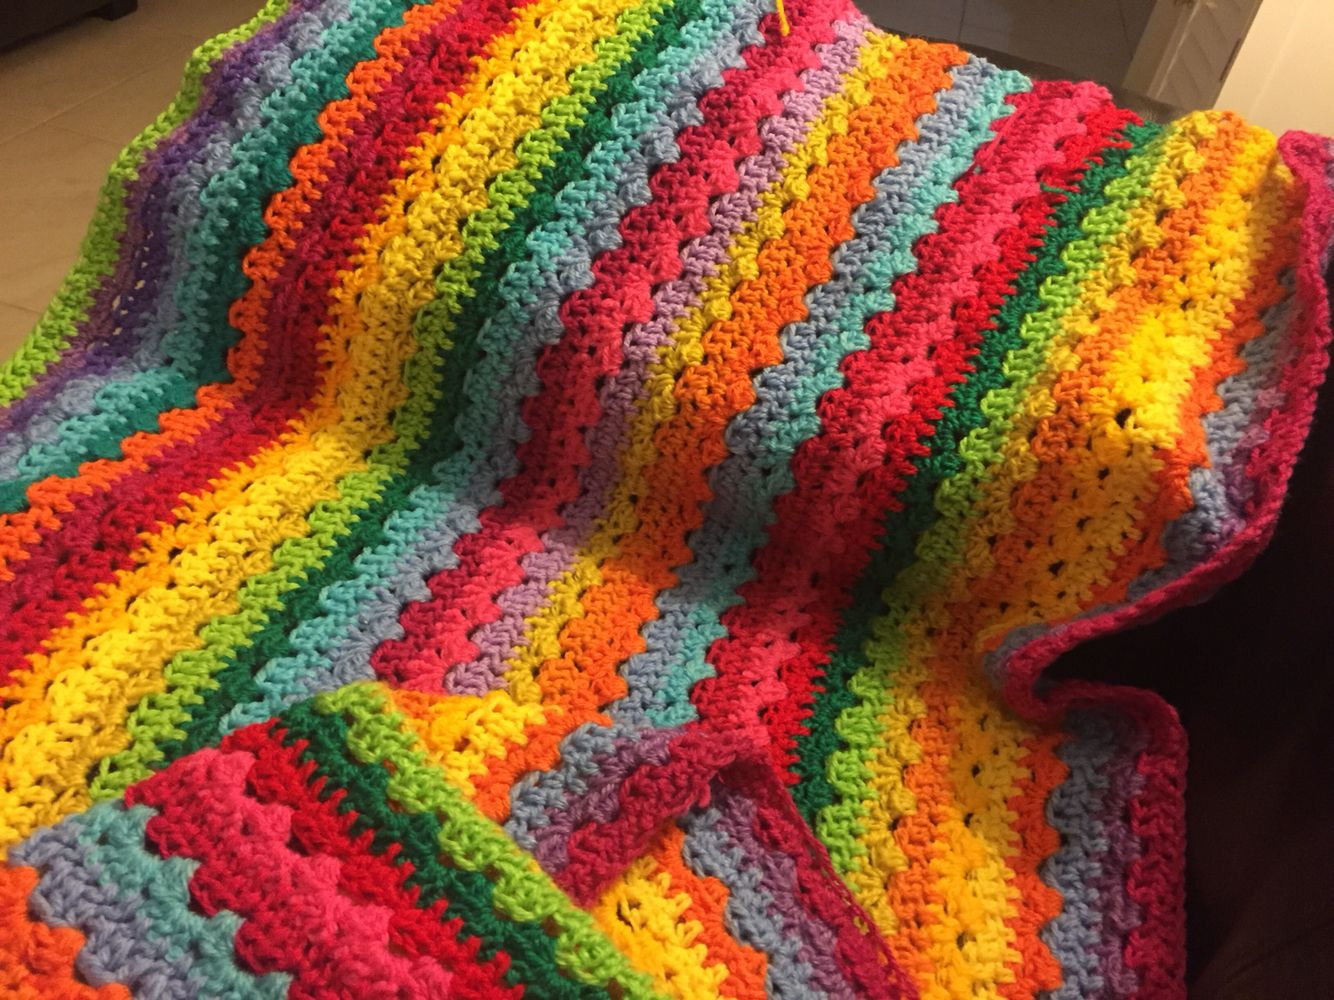 My newest project around 1/2 completed. Attic 24's Cosy Blanket! I am addicted to the colours and simple pattern. Currently measuring 180cm by  around 1metre! #crochet #colour #attic24